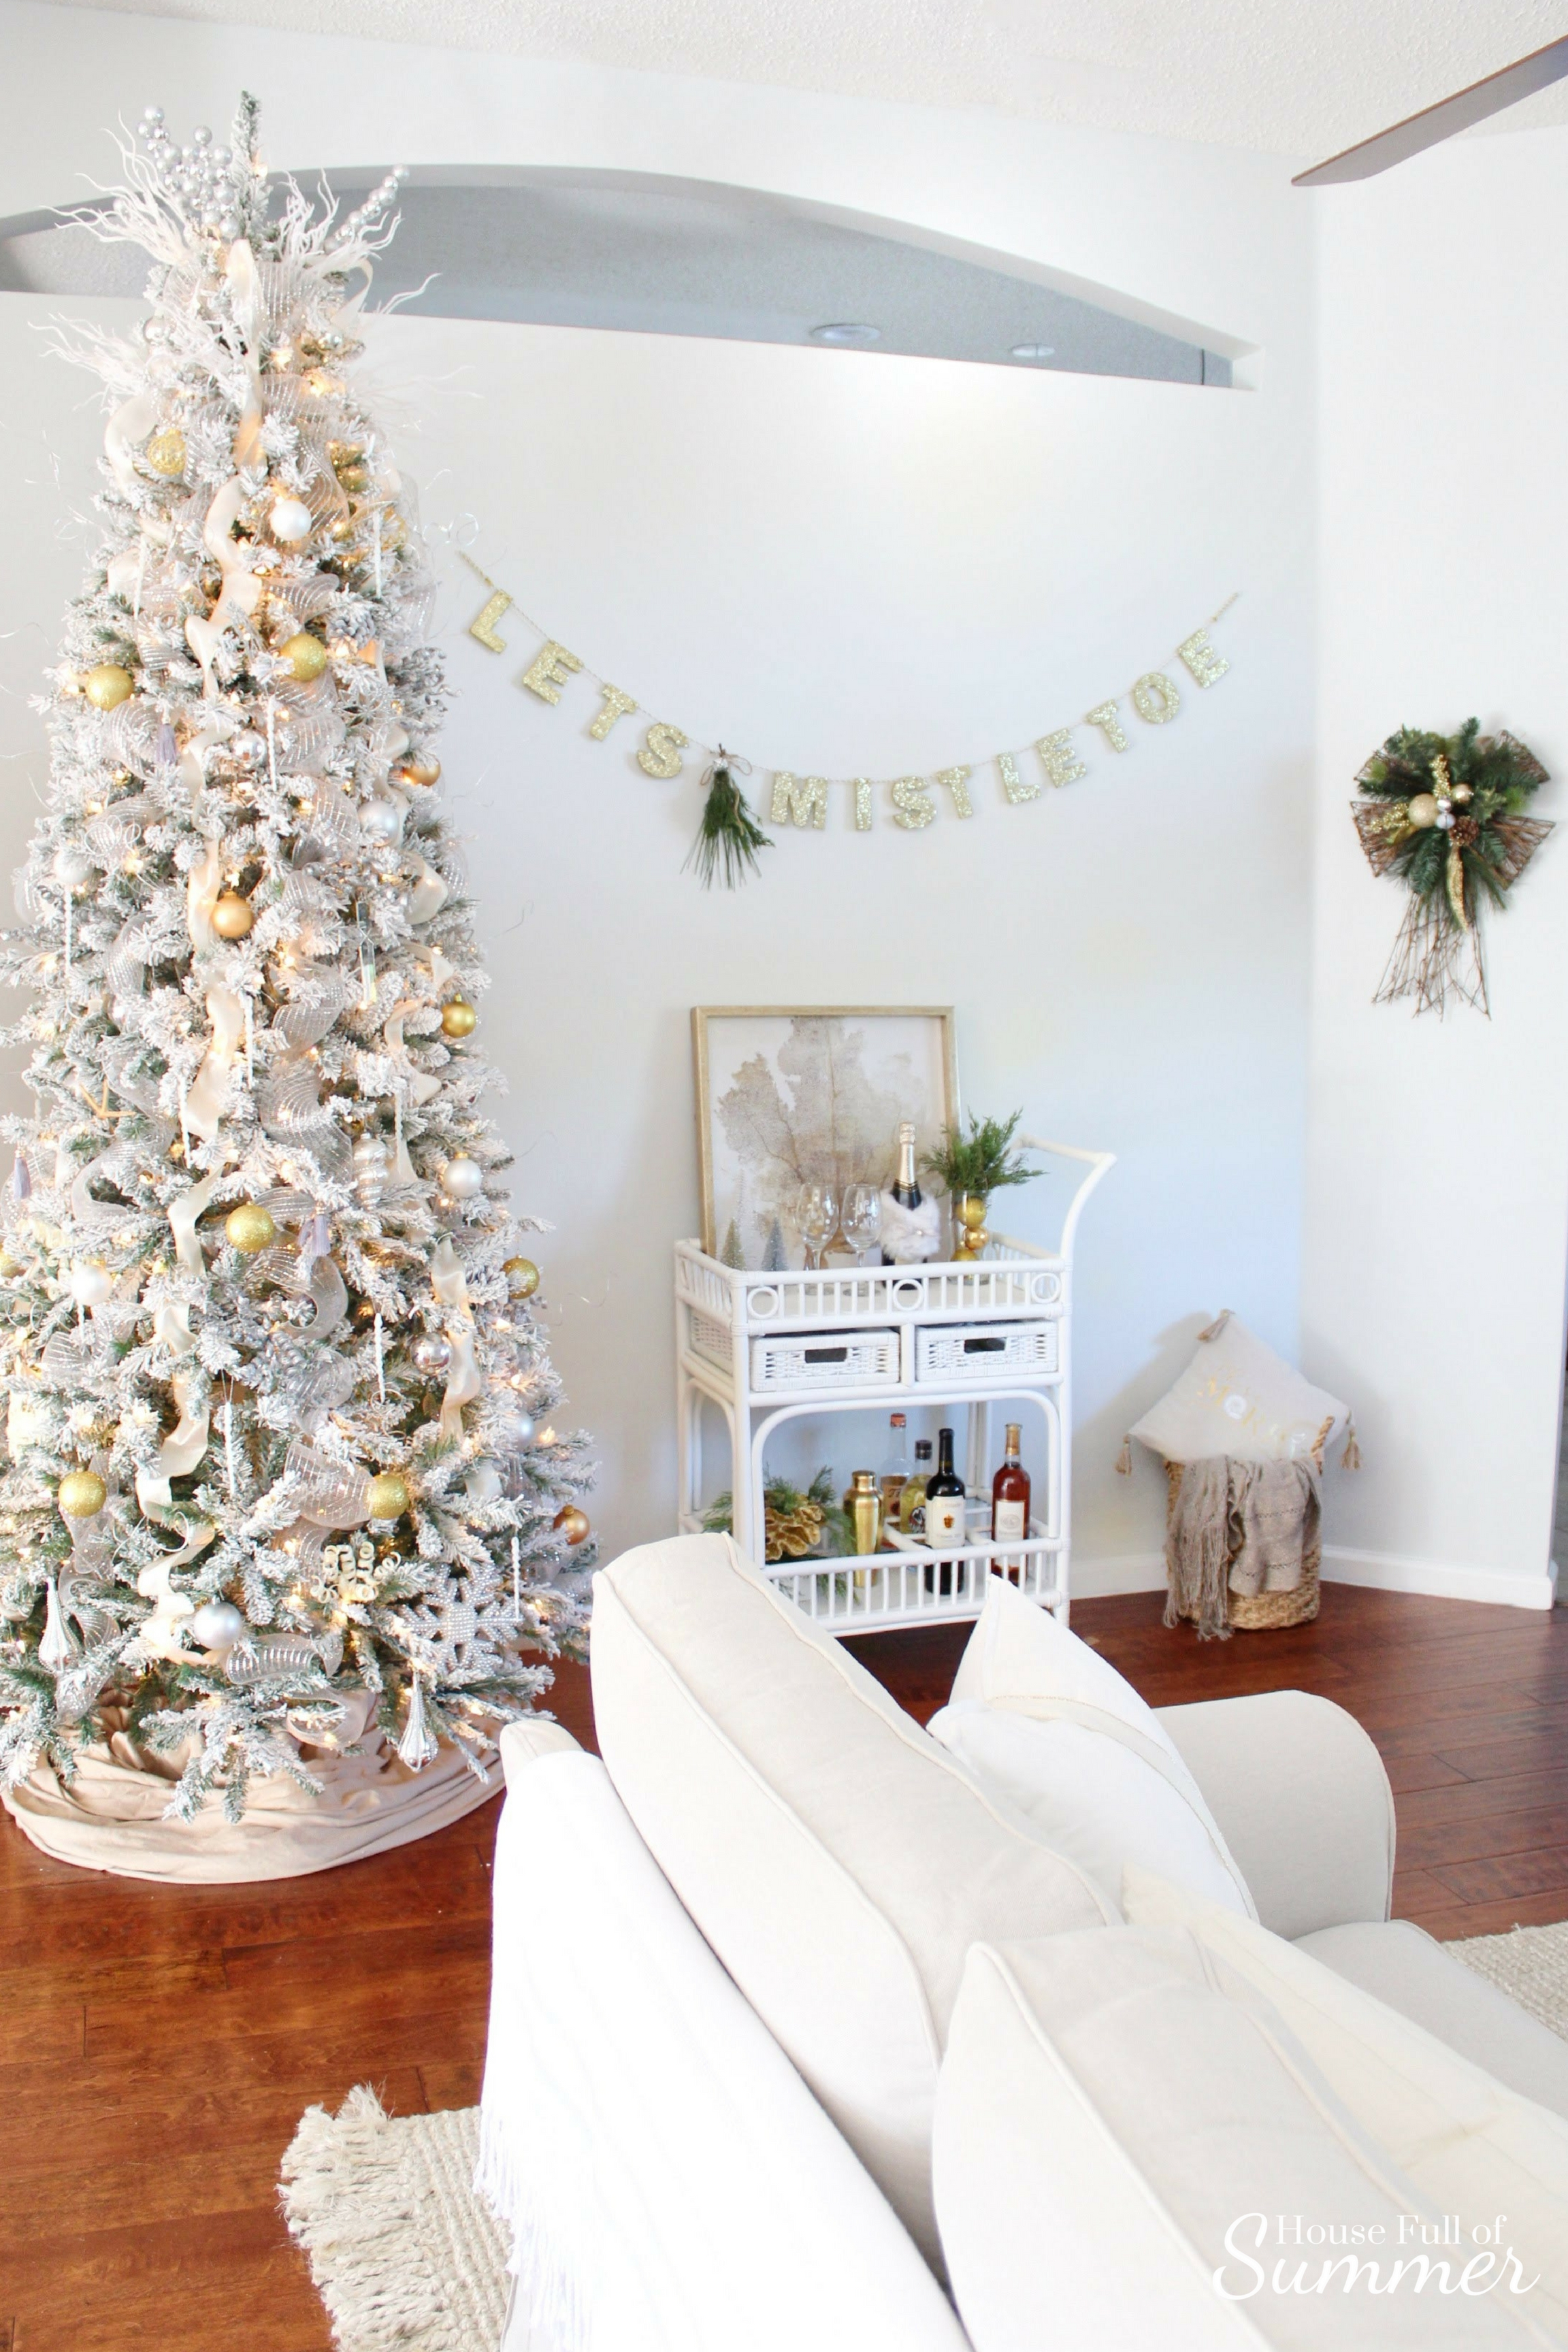 Christmas Home Tour | House Full of Summer blog hop - Cheerful Christmas Home Tourcoastal christmas neutral christmas decor, holiday home tour, florida christmas, white bar cart, gold glam christmas decor, let's mistletoe garland, elegant white and gold neutral Christmas decor, beachy Christmas, beach house ocean